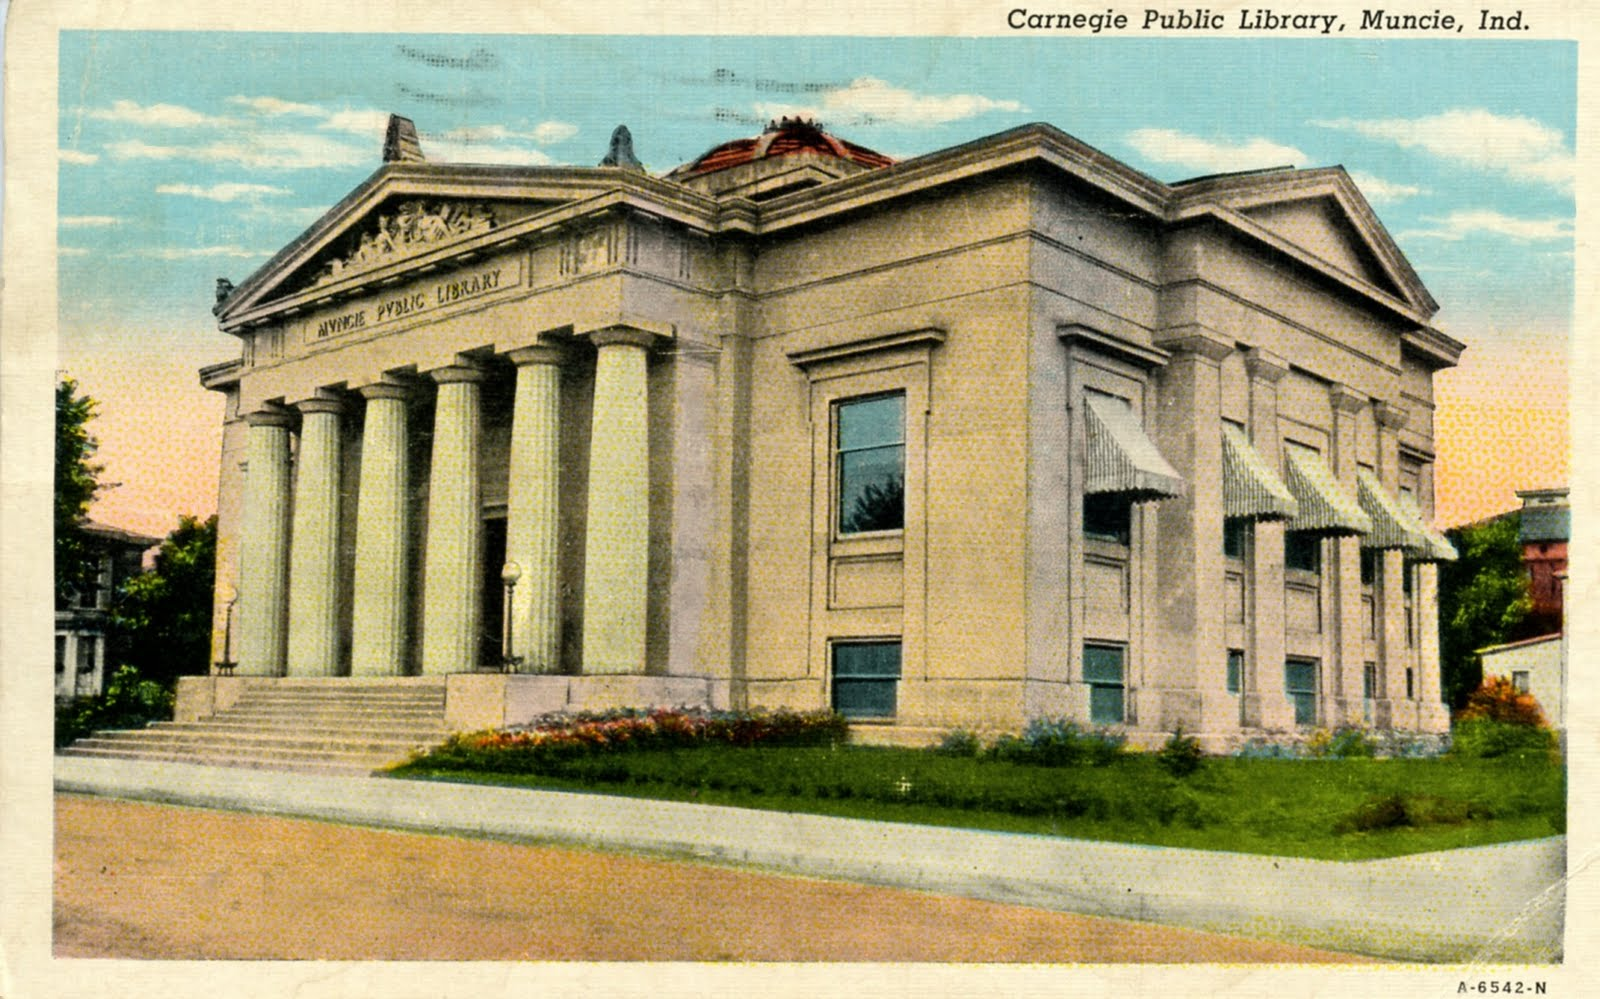 Postcard image of the library